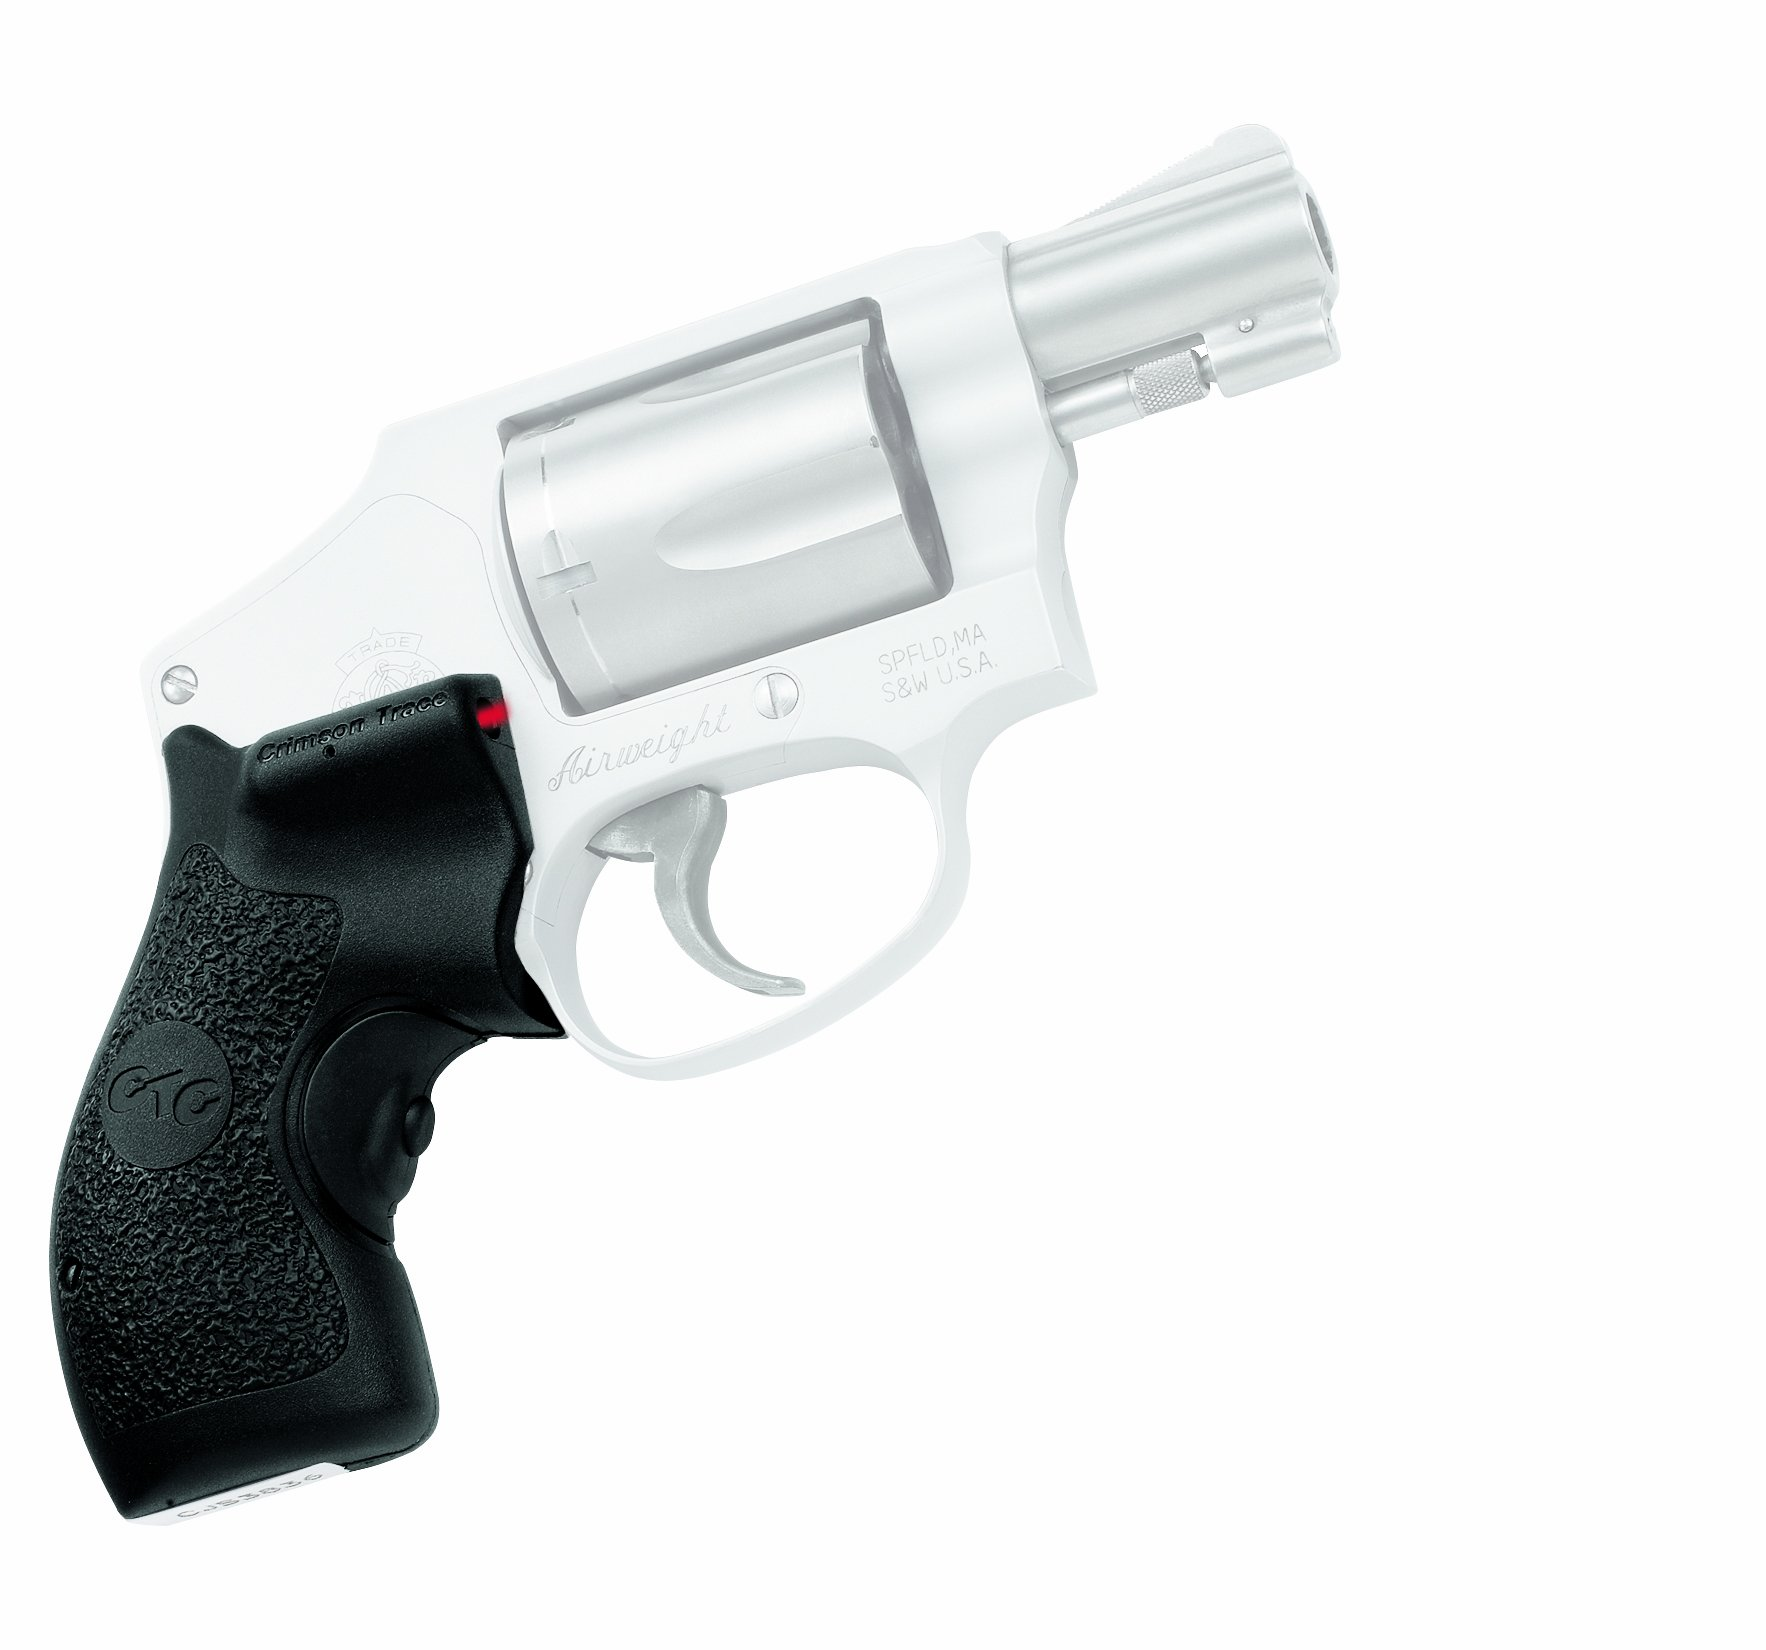 Crimson Trace LG-105 Lasergrips Red Laser Sight Grips for Smith & Wesson J-Frame (Round Butt) Revolvers